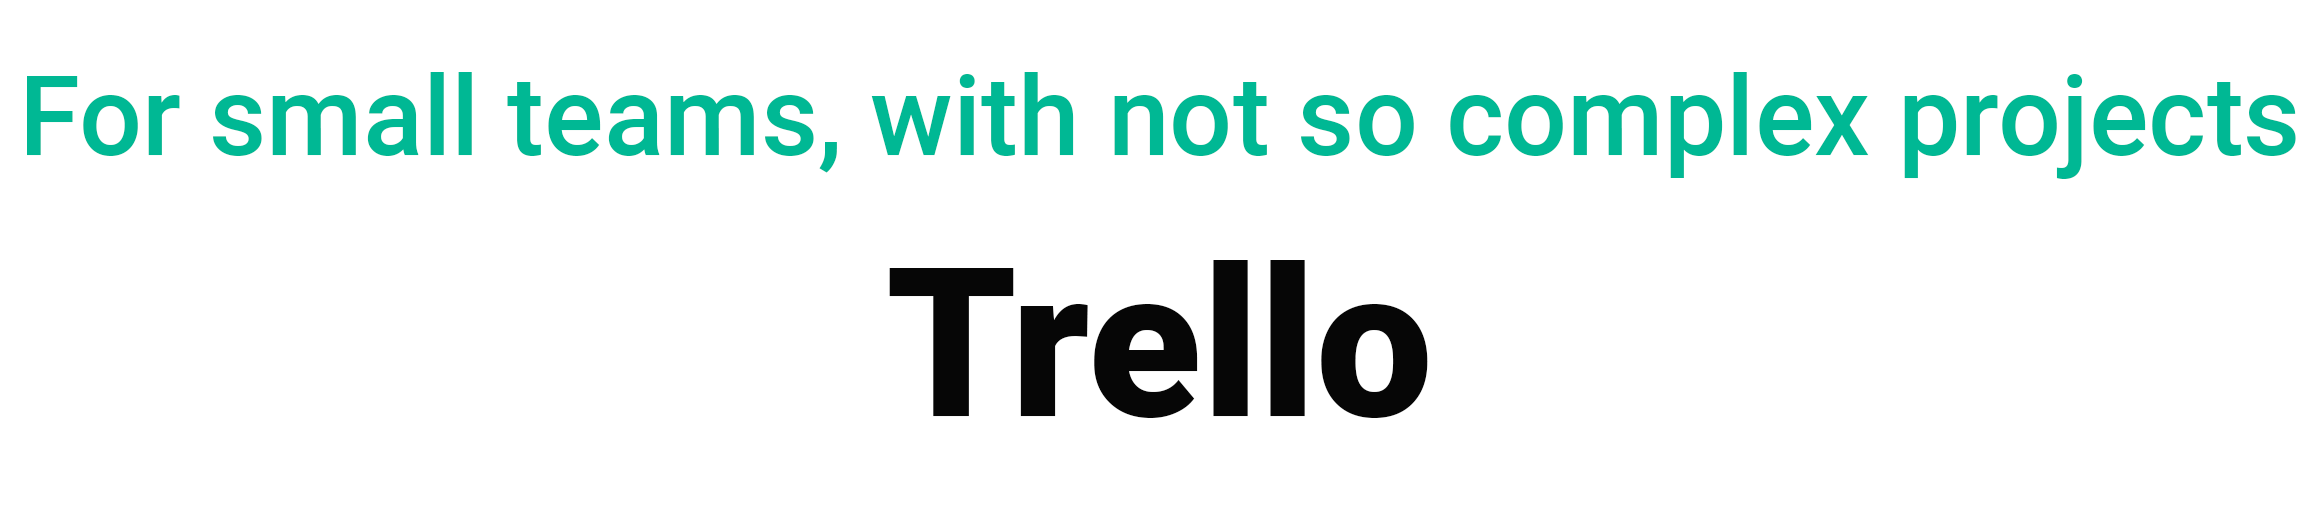 For small teams, with not so complex projects TRELLO remote team management tools